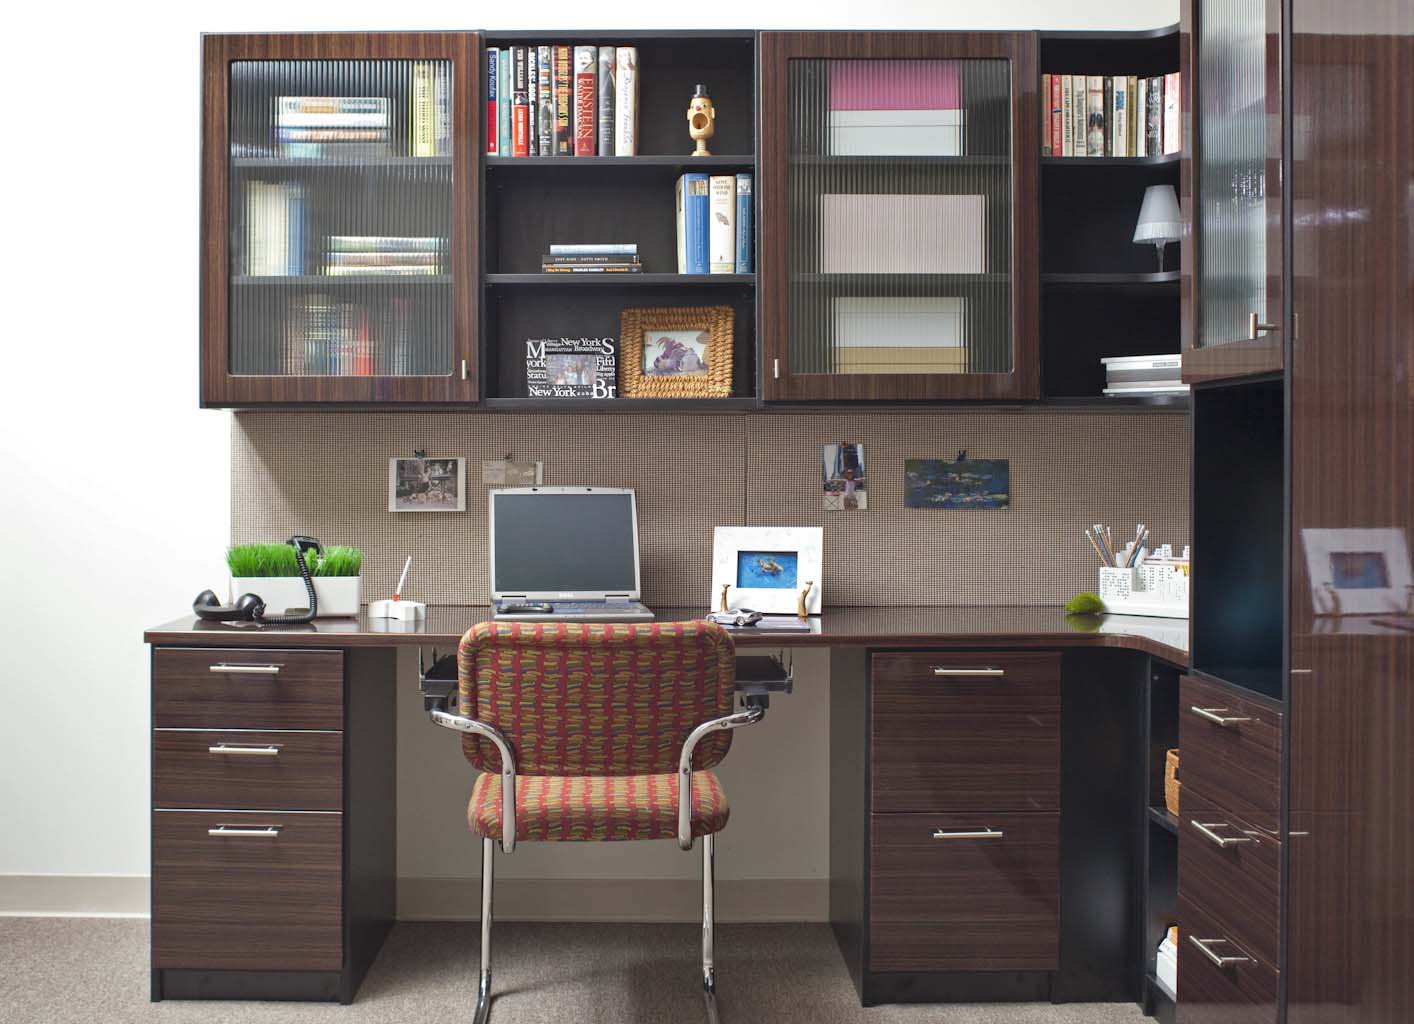 Organized home office with cabinets